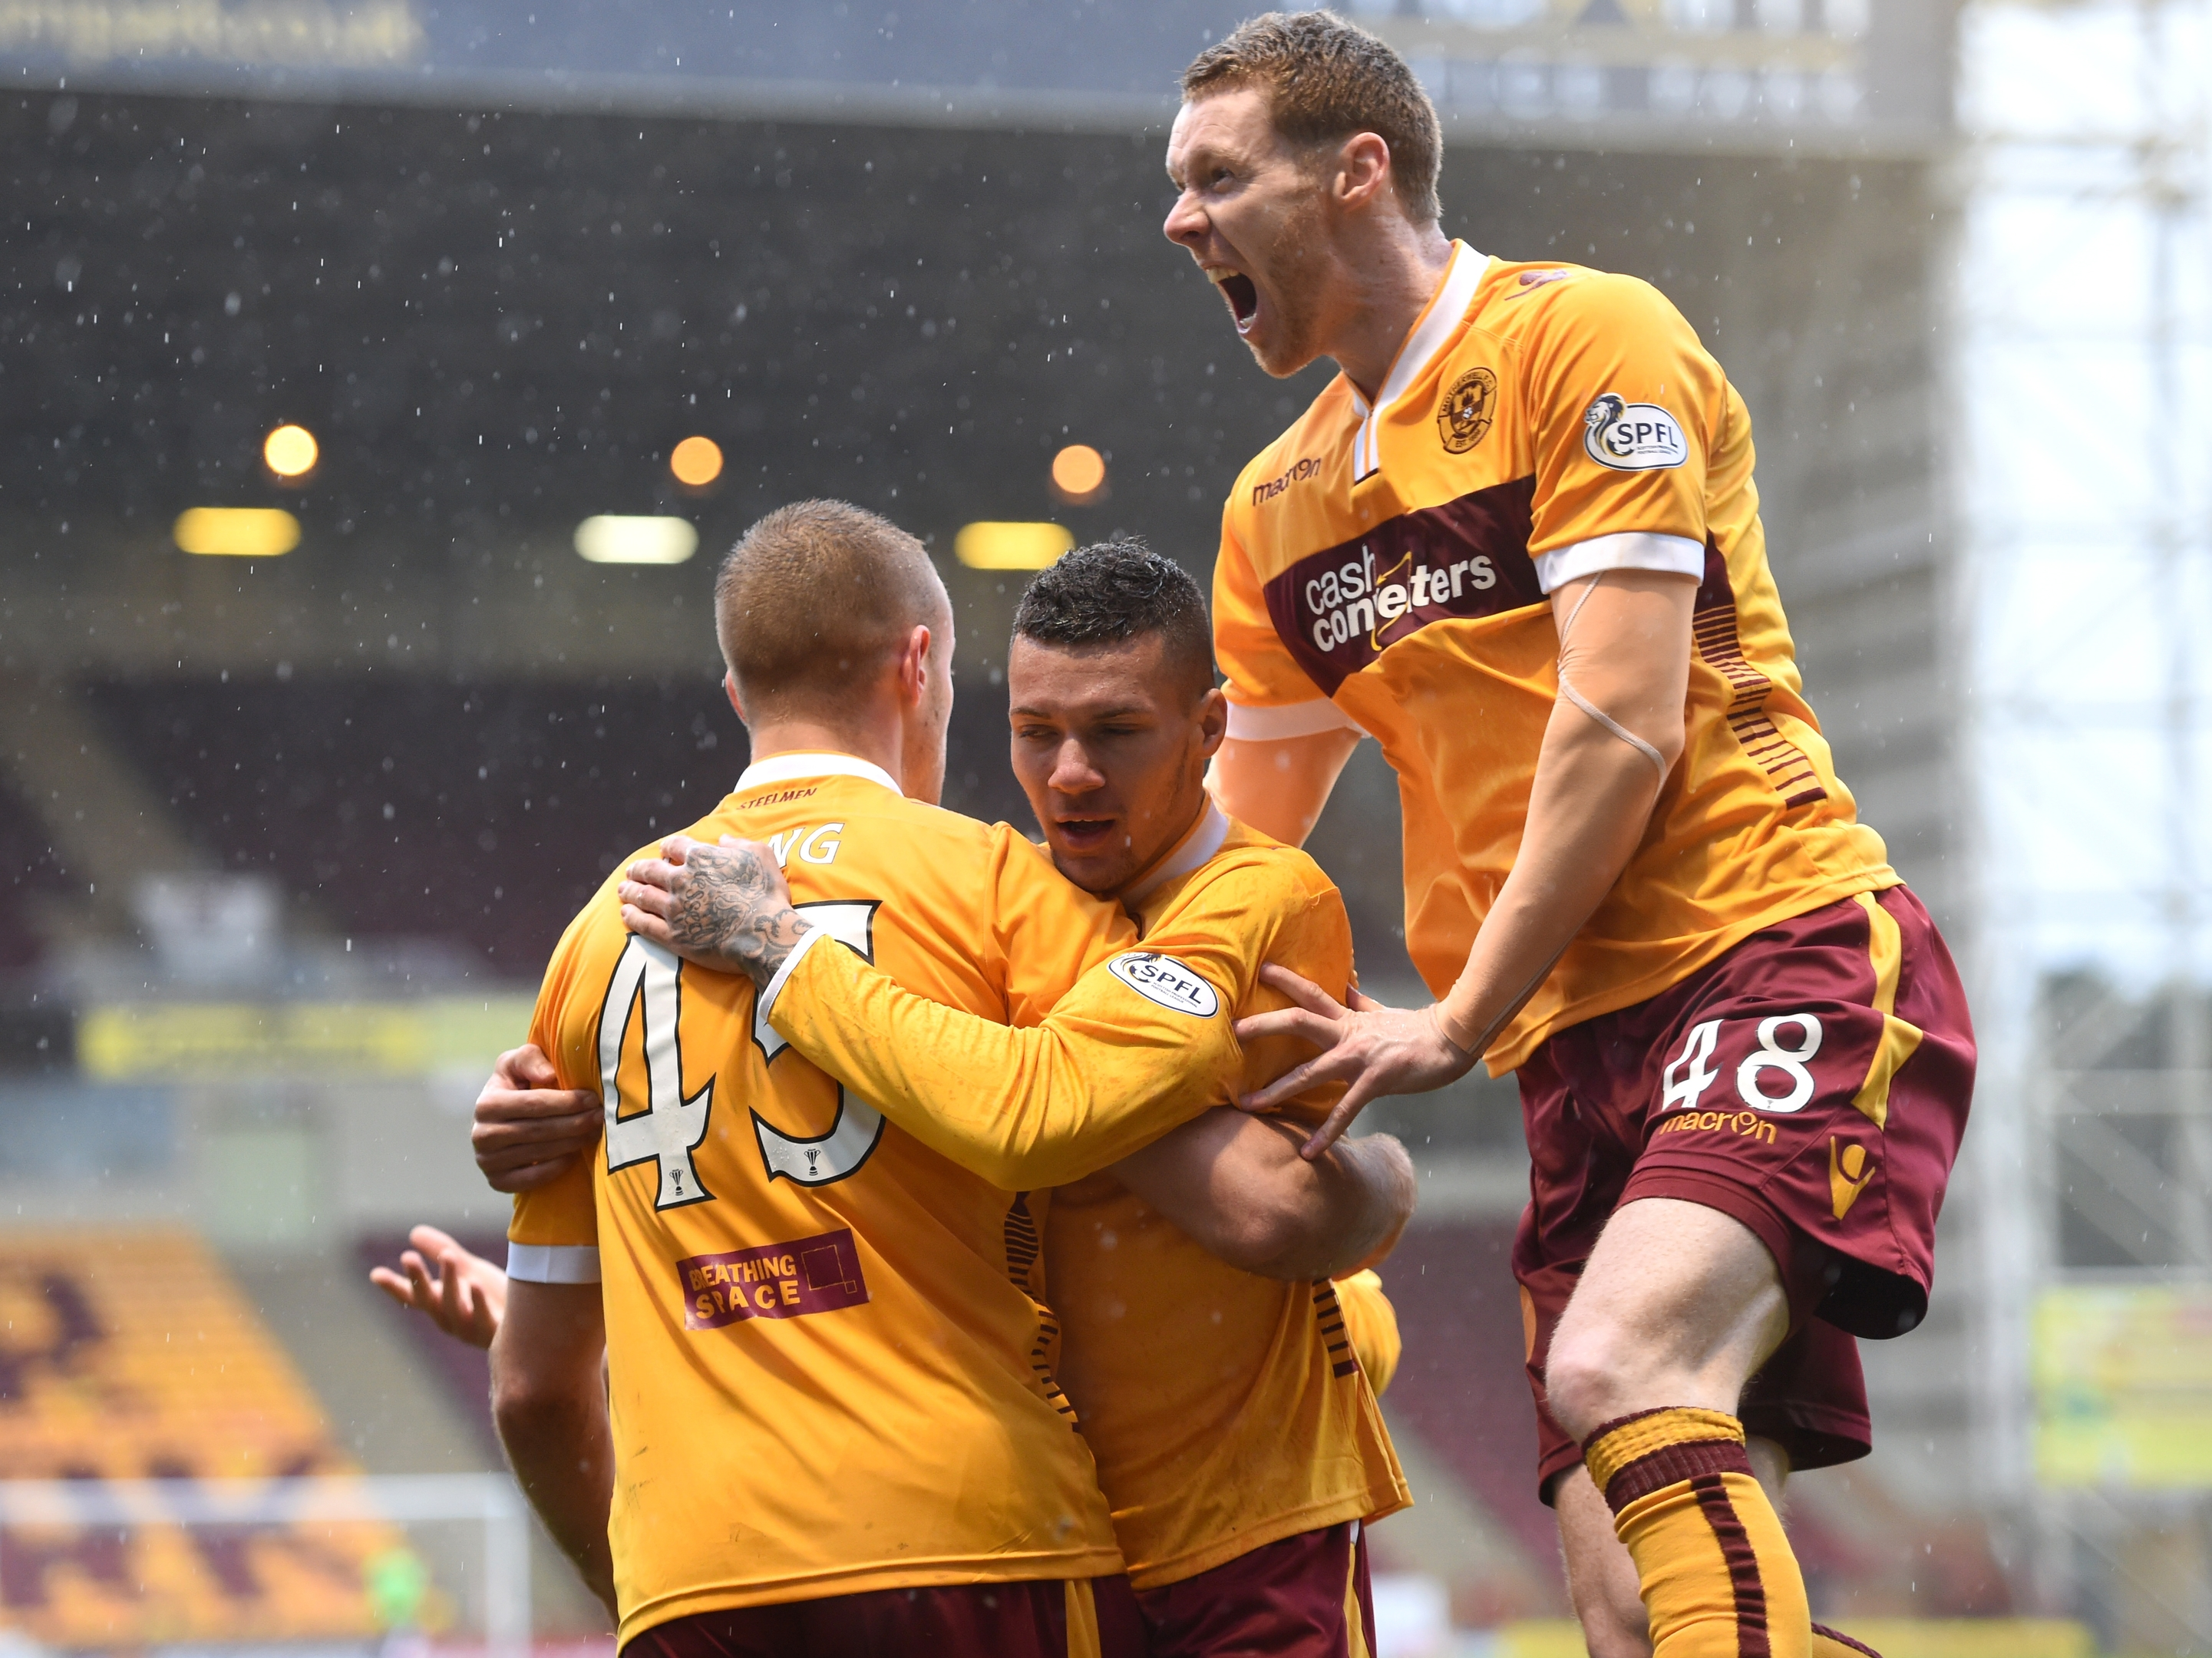 Stephen Pearson looks likely to leave Motherwell